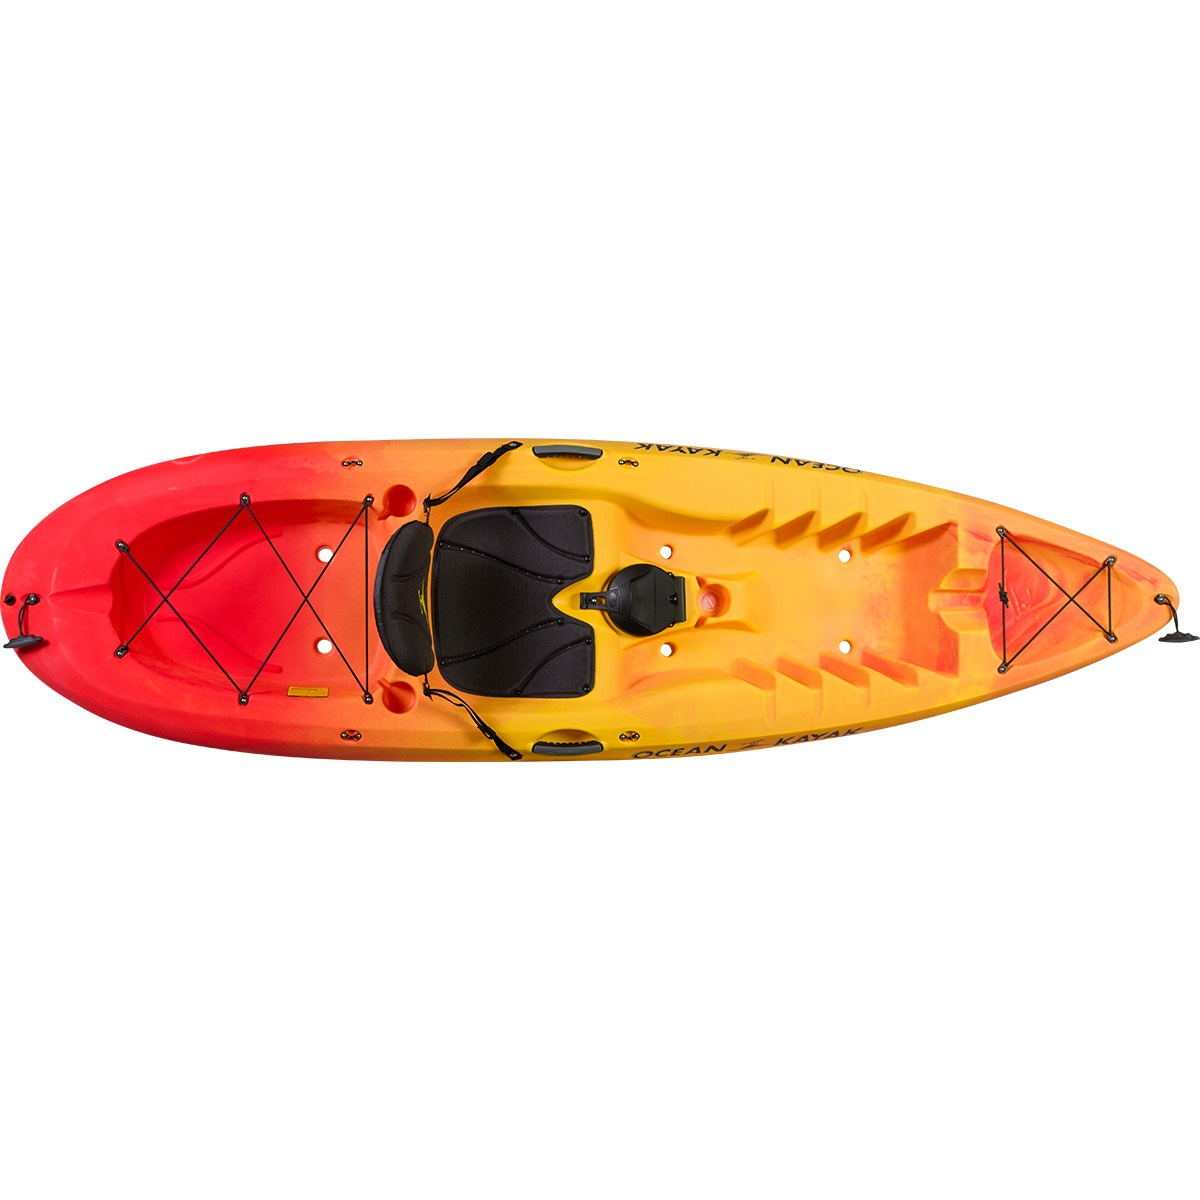 red orange yellow sunrise Tandem single double kayak uk England family holiday camping seaside fun surf coast isle of wight paddles adventure activities earth wind water surf tackt-isle shop package deal